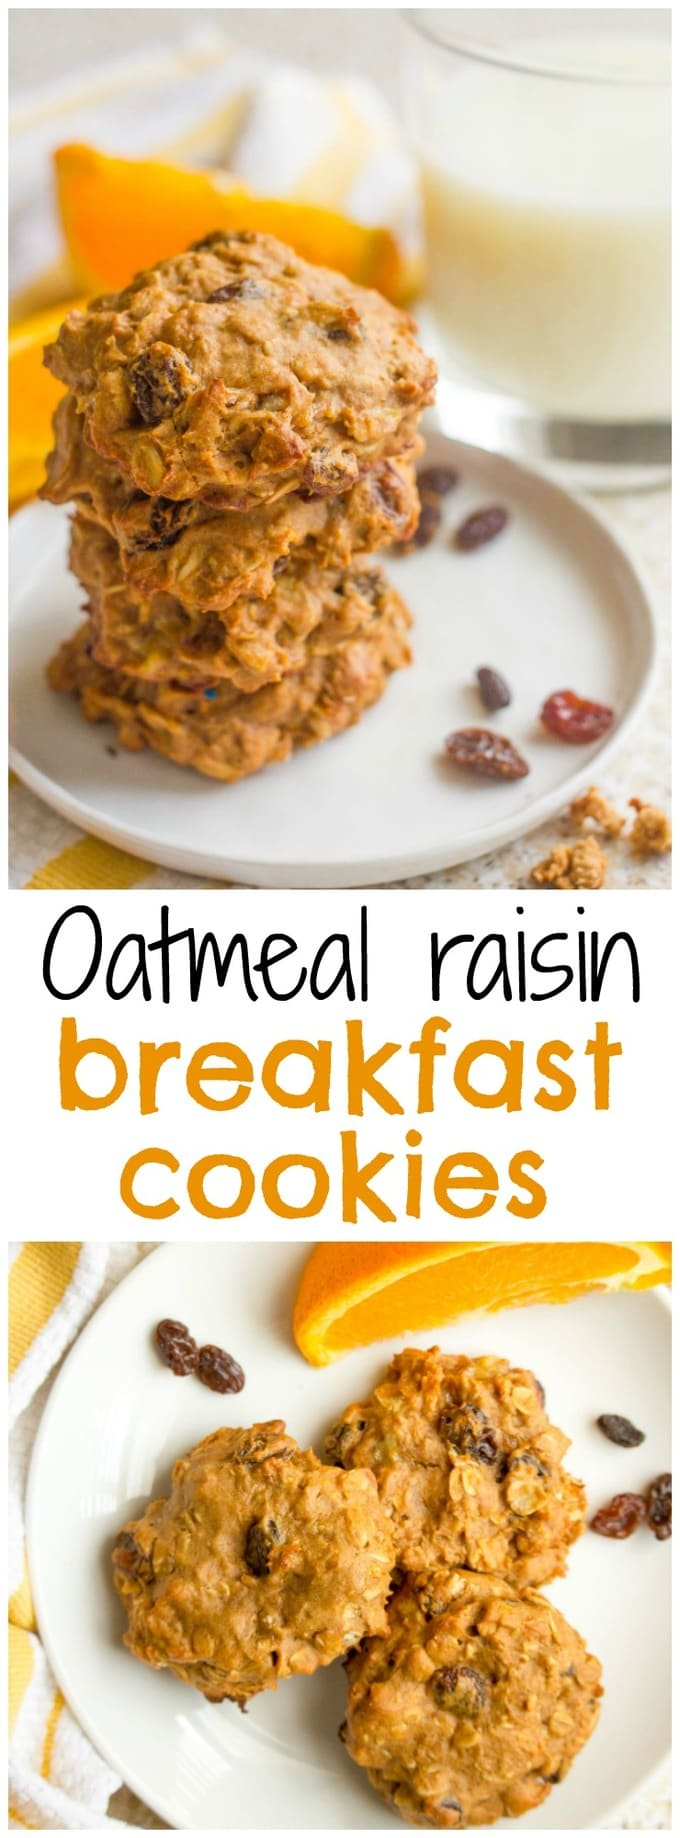 Wholesome oatmeal raisin breakfast cookies that are 100% whole grain and naturally sweetened